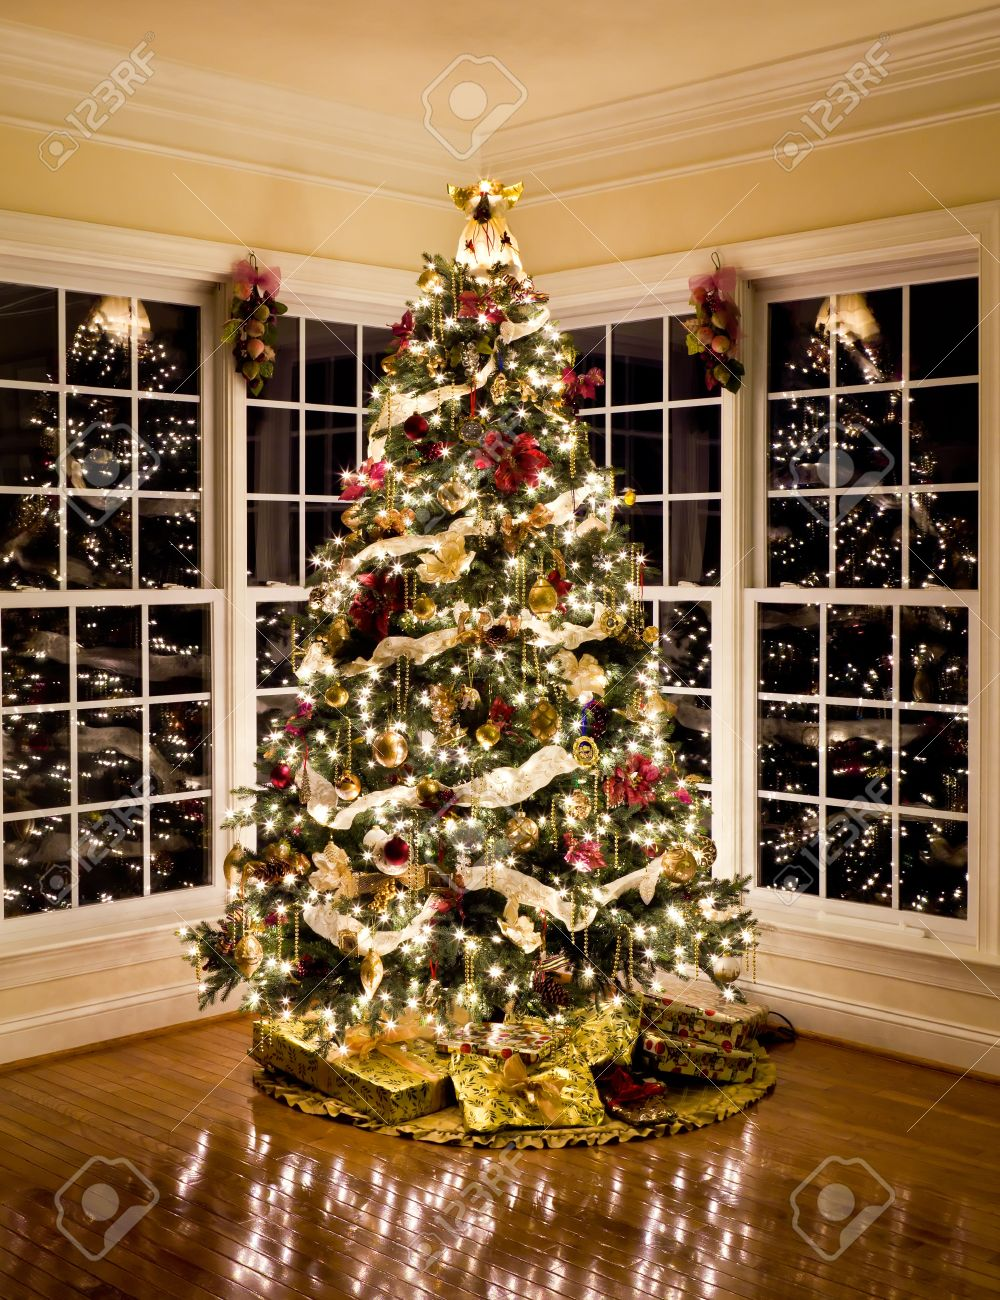 Christmas tree with presents and lights - Christmas Tree With Presents And Lights Reflecting In Windows Around The Tree In Modern Home Stock